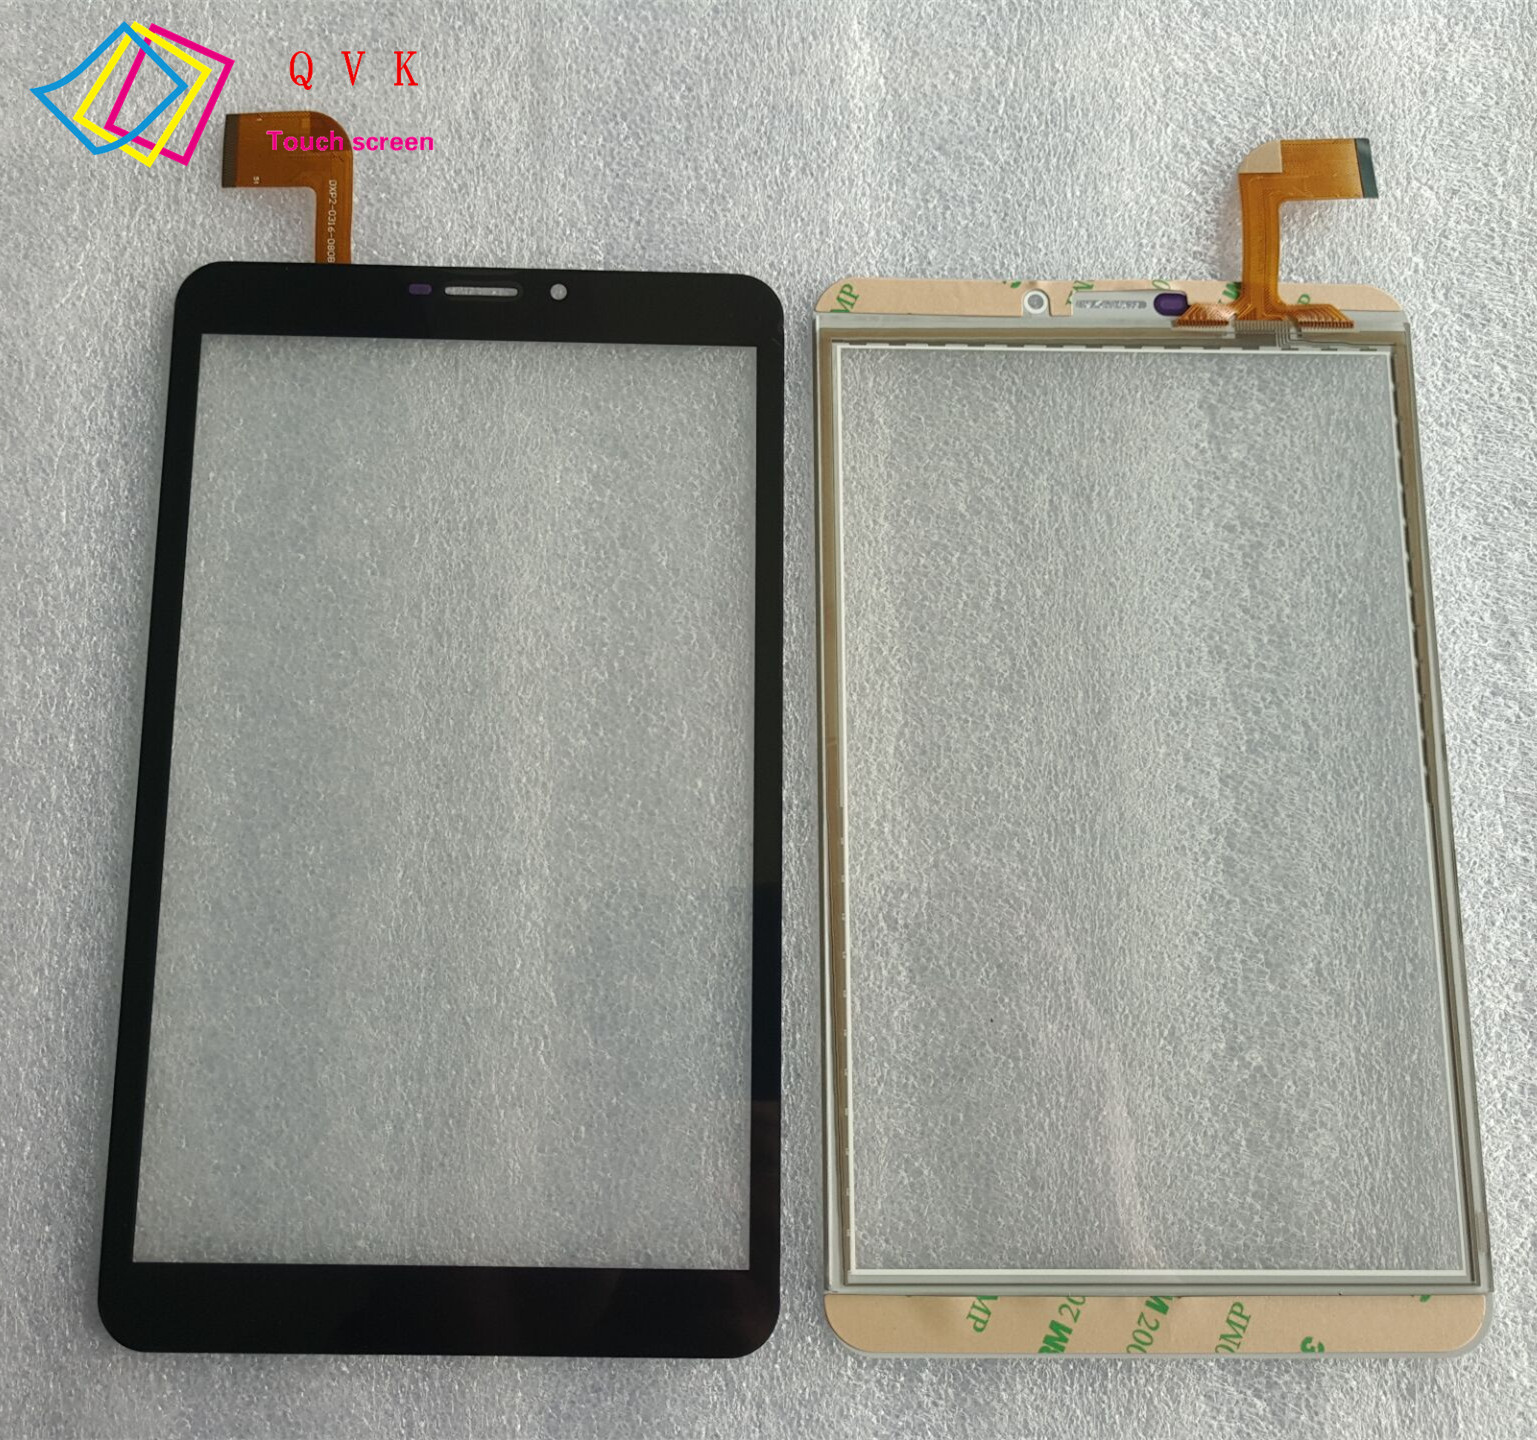 8 Inch for Irbis TZ877 TZ 877 TZ877t tablet pc capacitive touch screen glass digitizer panel Free shipping black and white for irbis tz191 tz 191 tablet capacitive touch screen 10 1 inch pc touch panel digitizer glass mid sensor